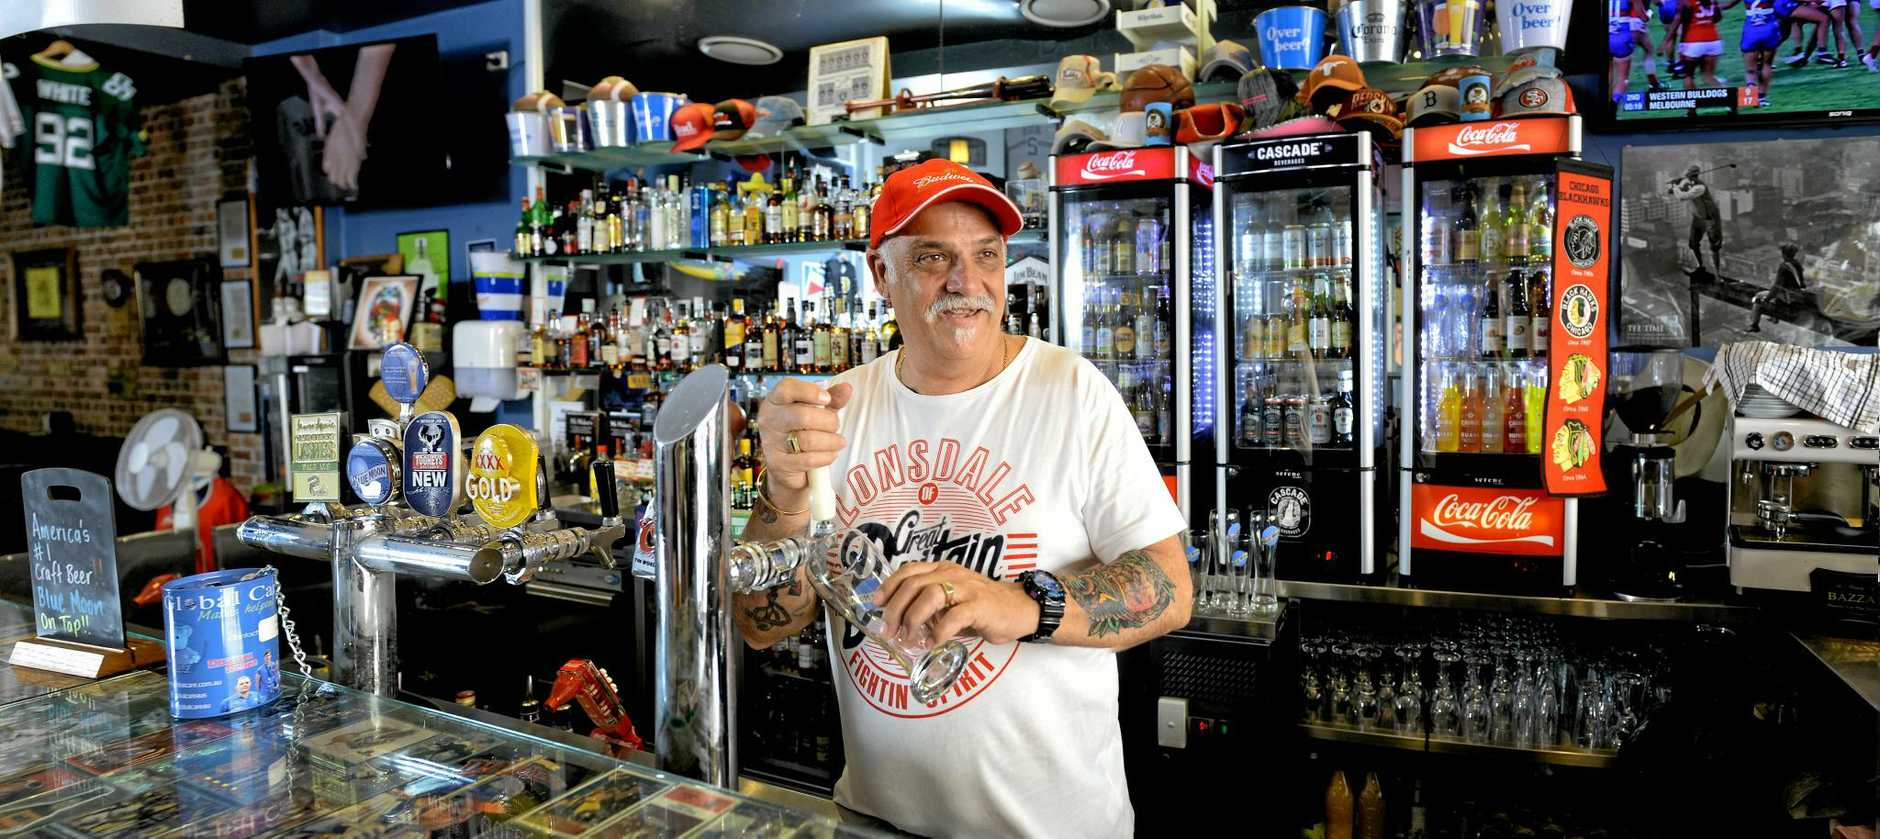 CONFIDENT: Dusty's owner Mark Dale is optimistic his business will receive a five-star food safety rating.